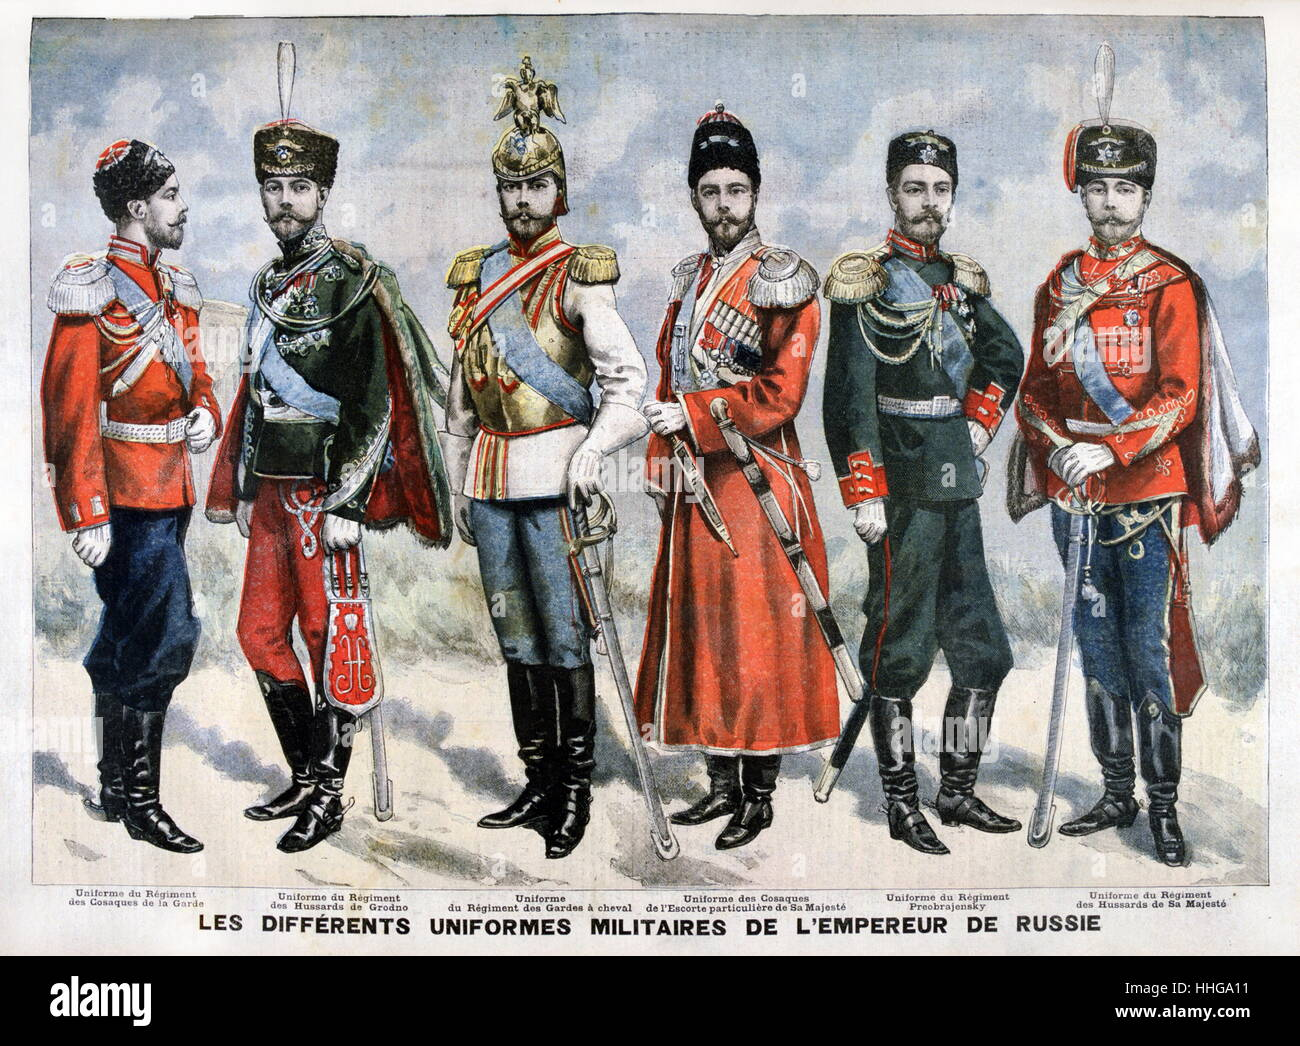 Different uniforms worn by Tsar Nicholas II of Russia deposed in 1917 - Stock Image